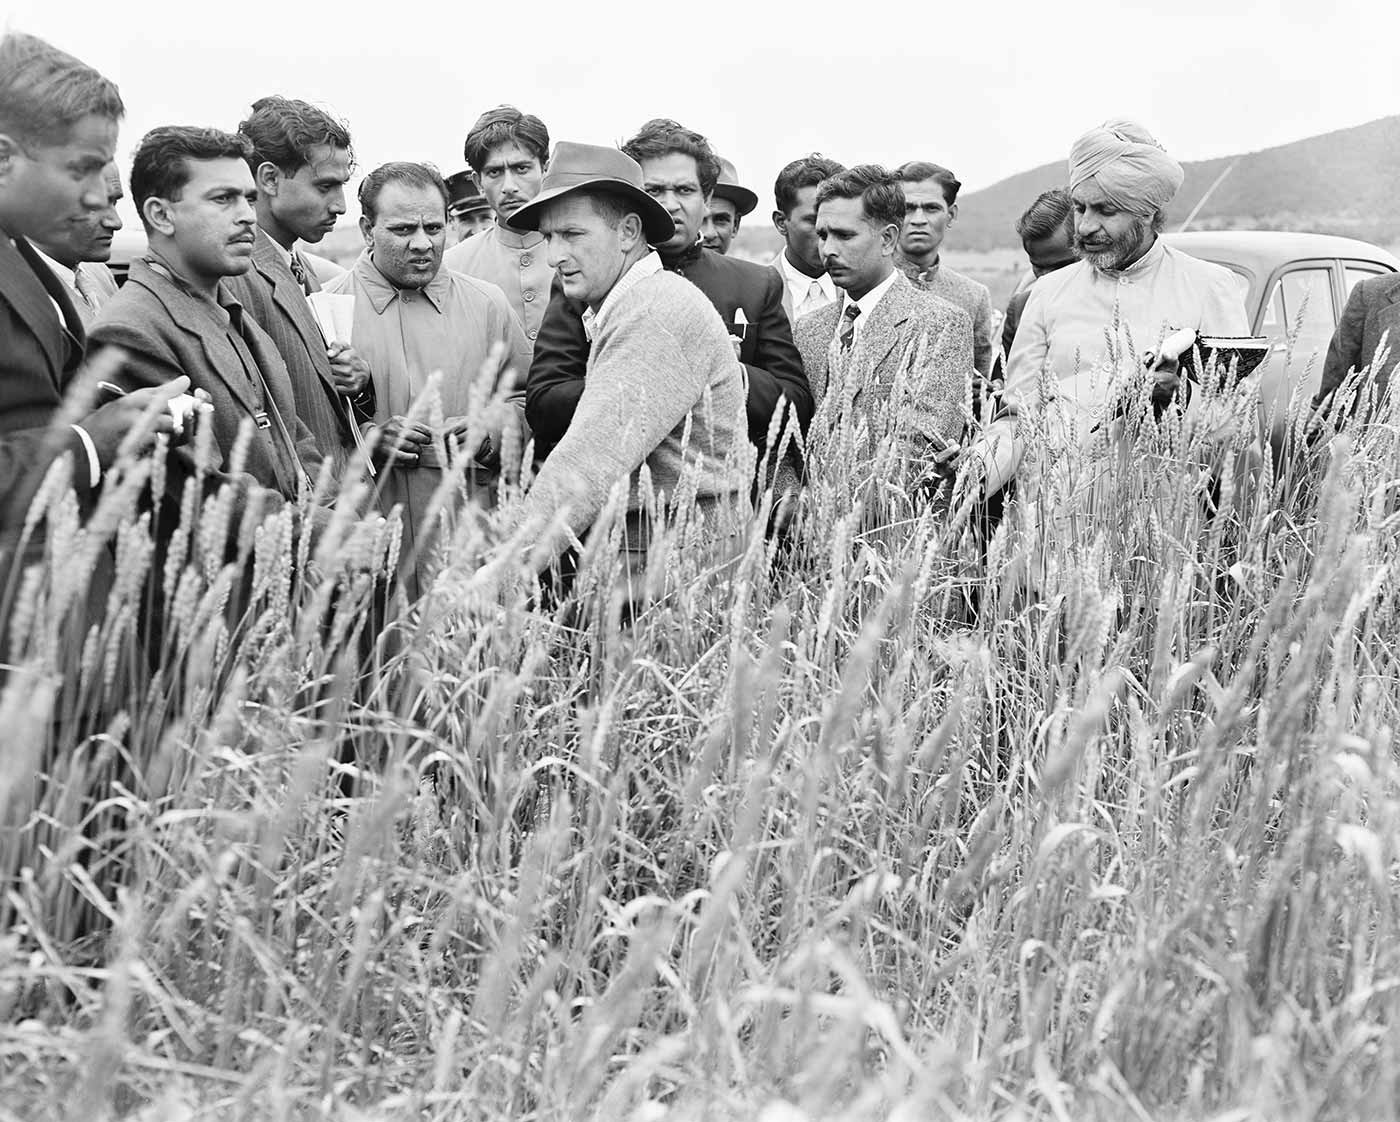 A black and white photo of a group of men inspecting a wheat crop.